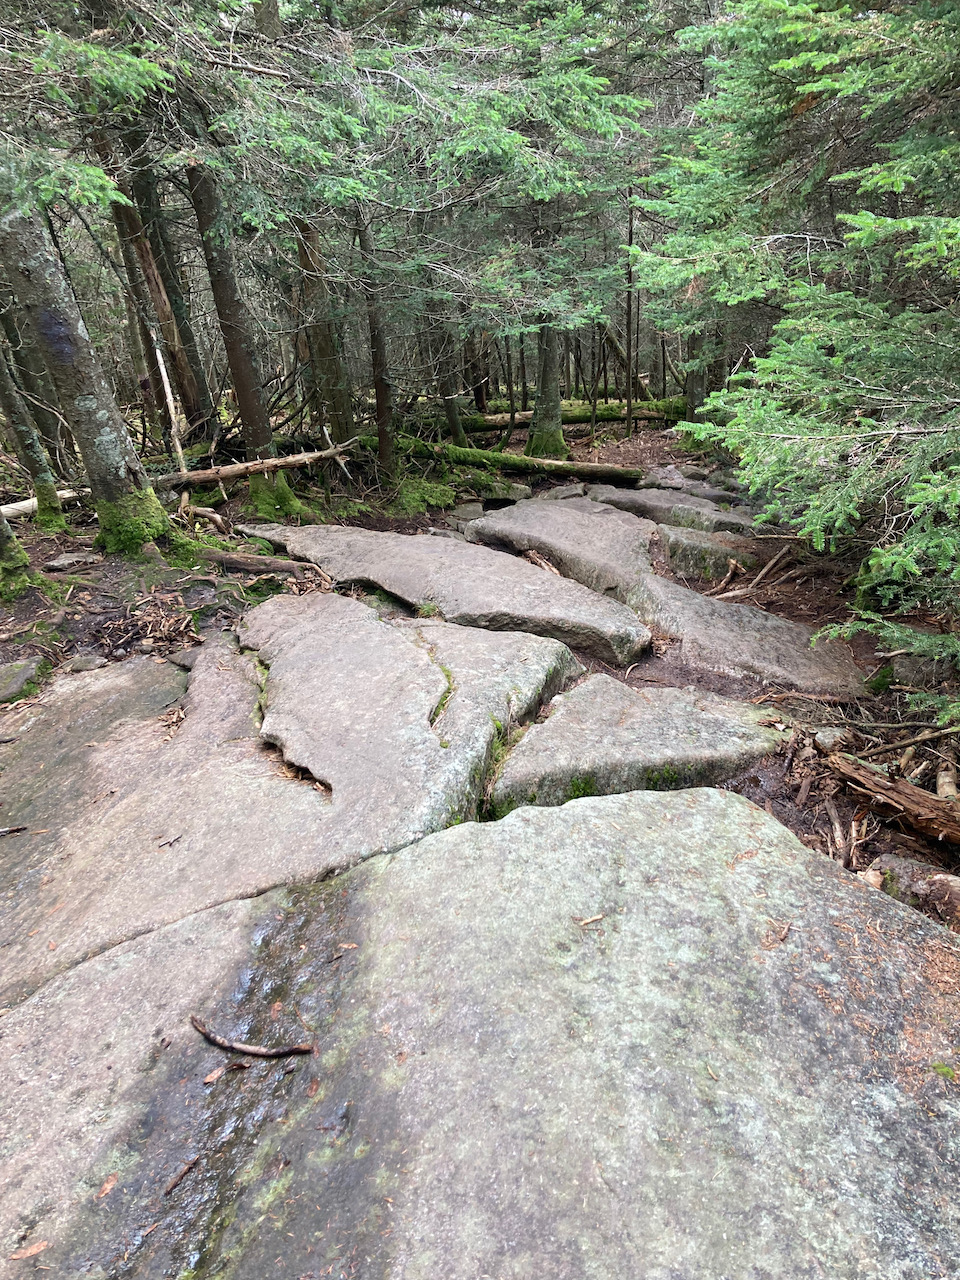 View of broken rocks along the trail, facing downhill.